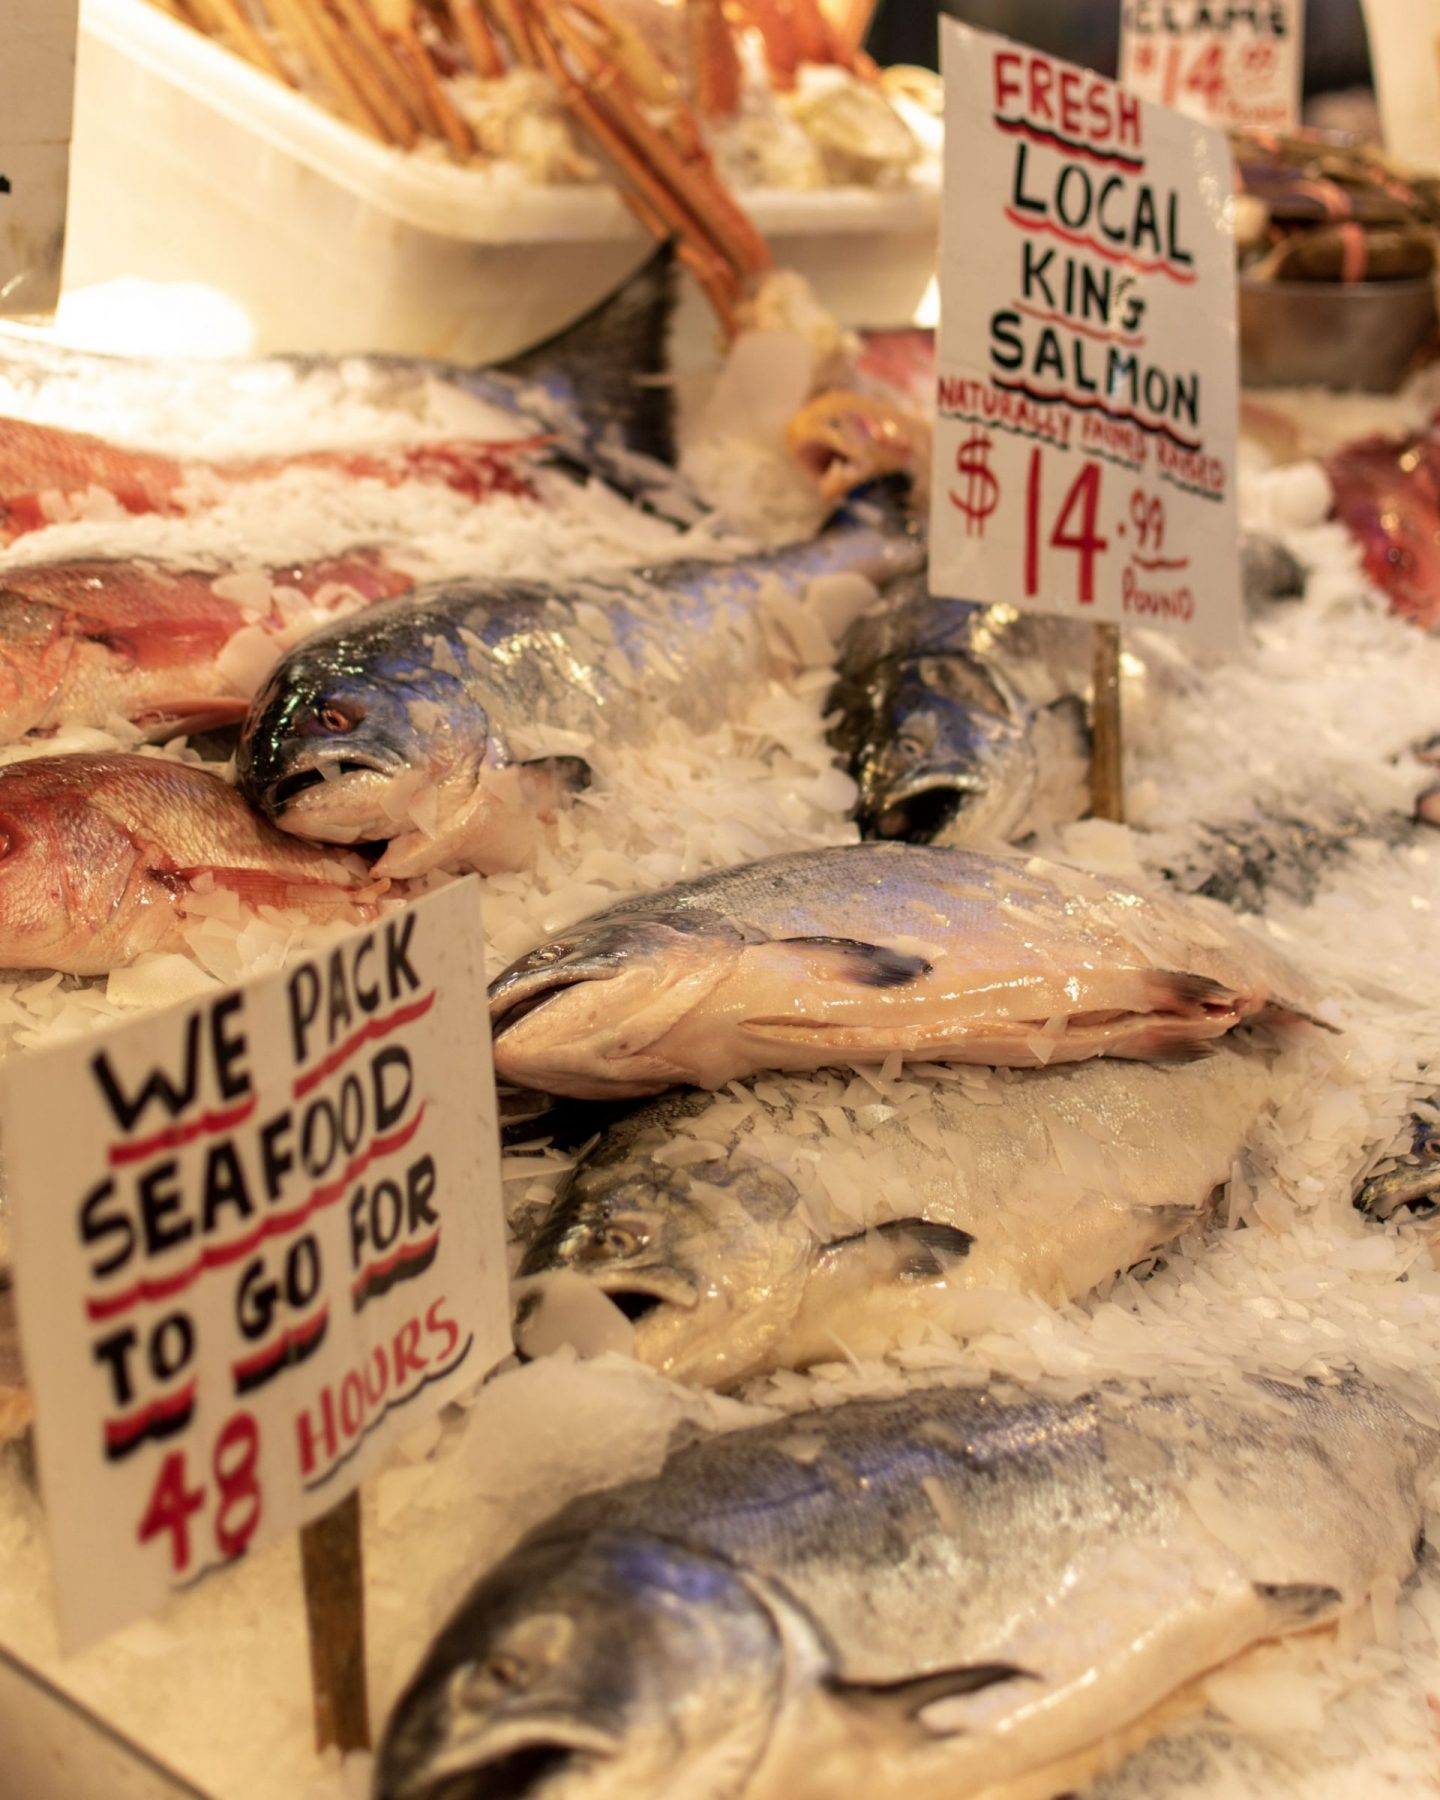 Pike Place Fish Market in Seattle